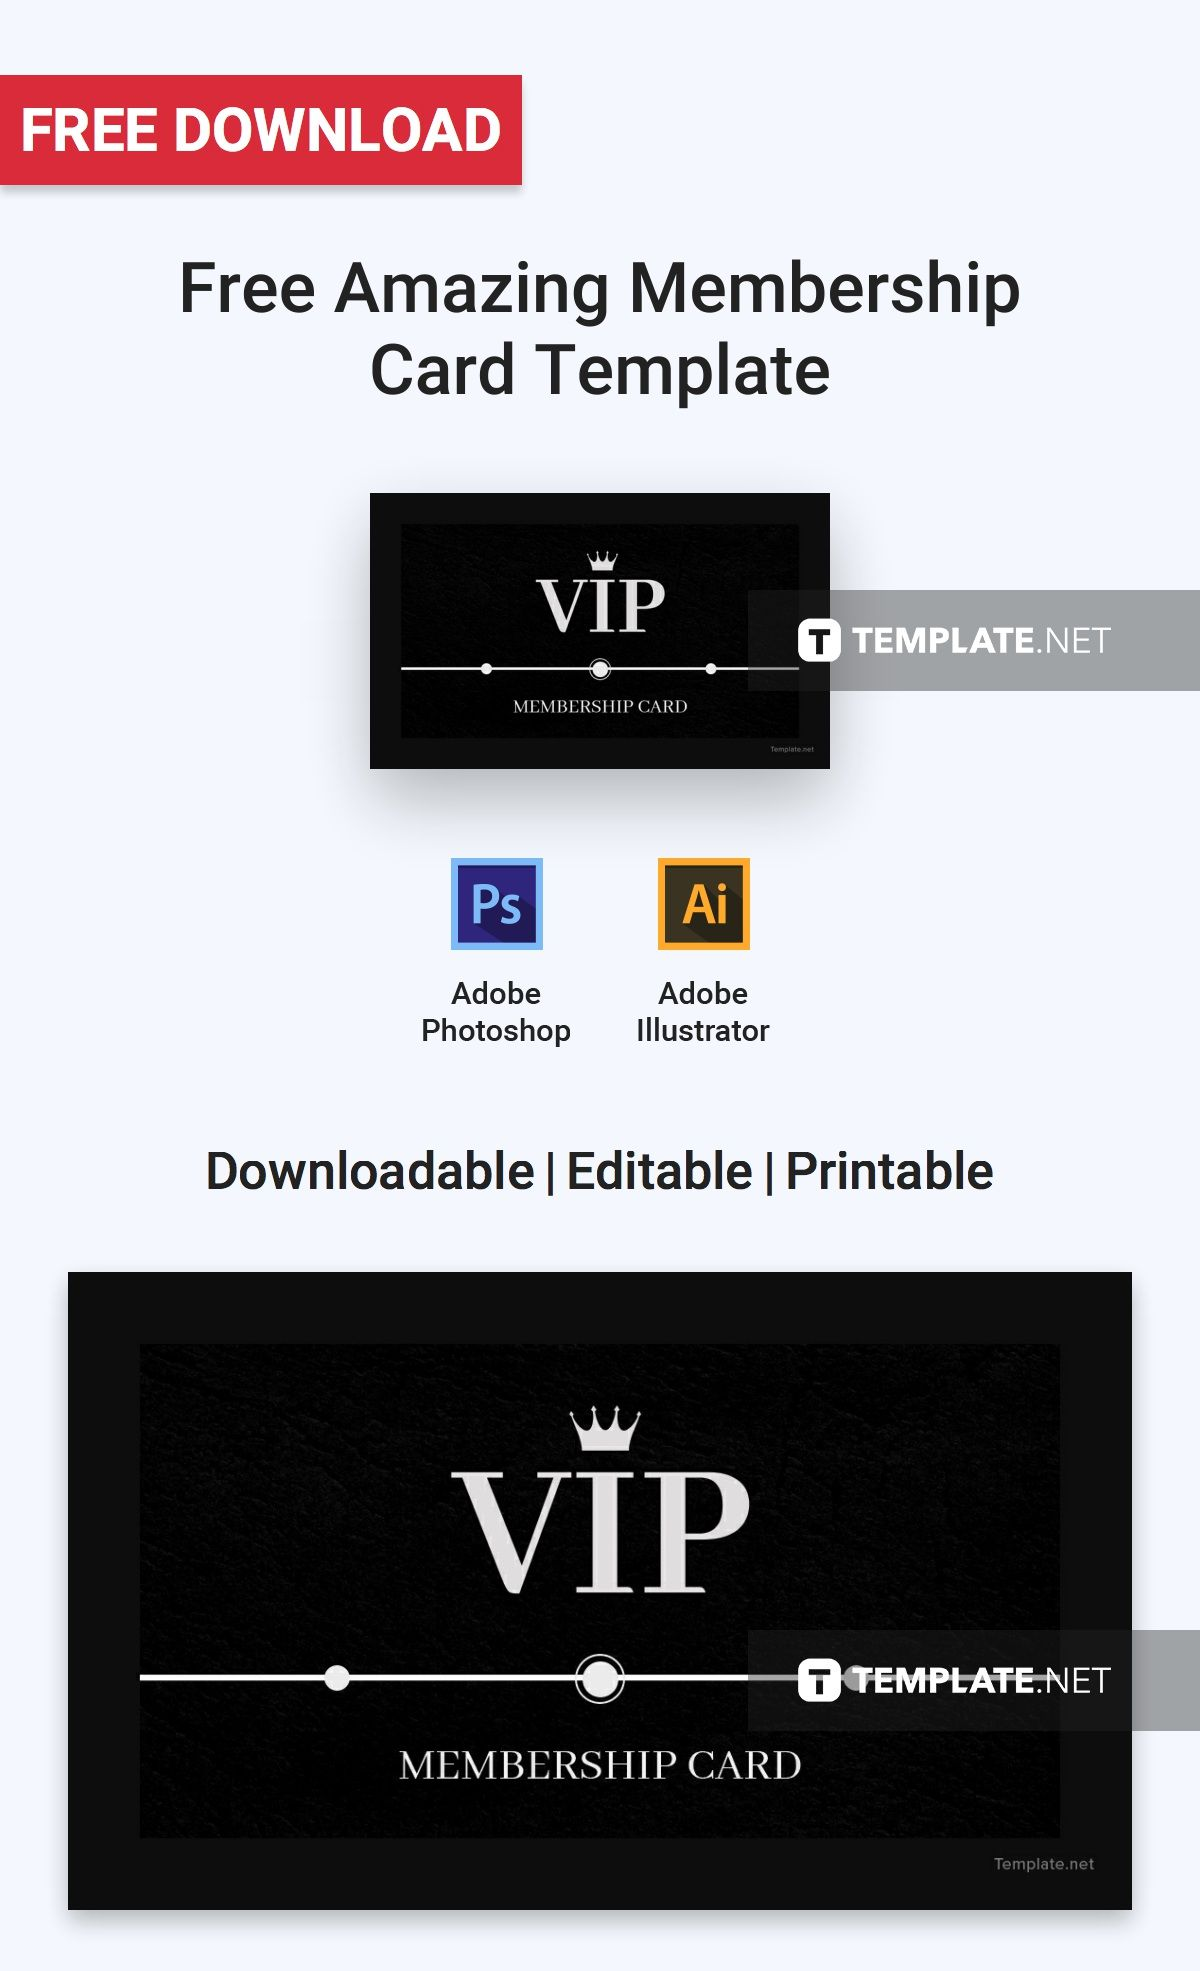 Free Amazing Membership Card Template Word Doc Psd Apple Mac Pages Illustrator Publisher Membership Card Card Templates Credit Card Statement